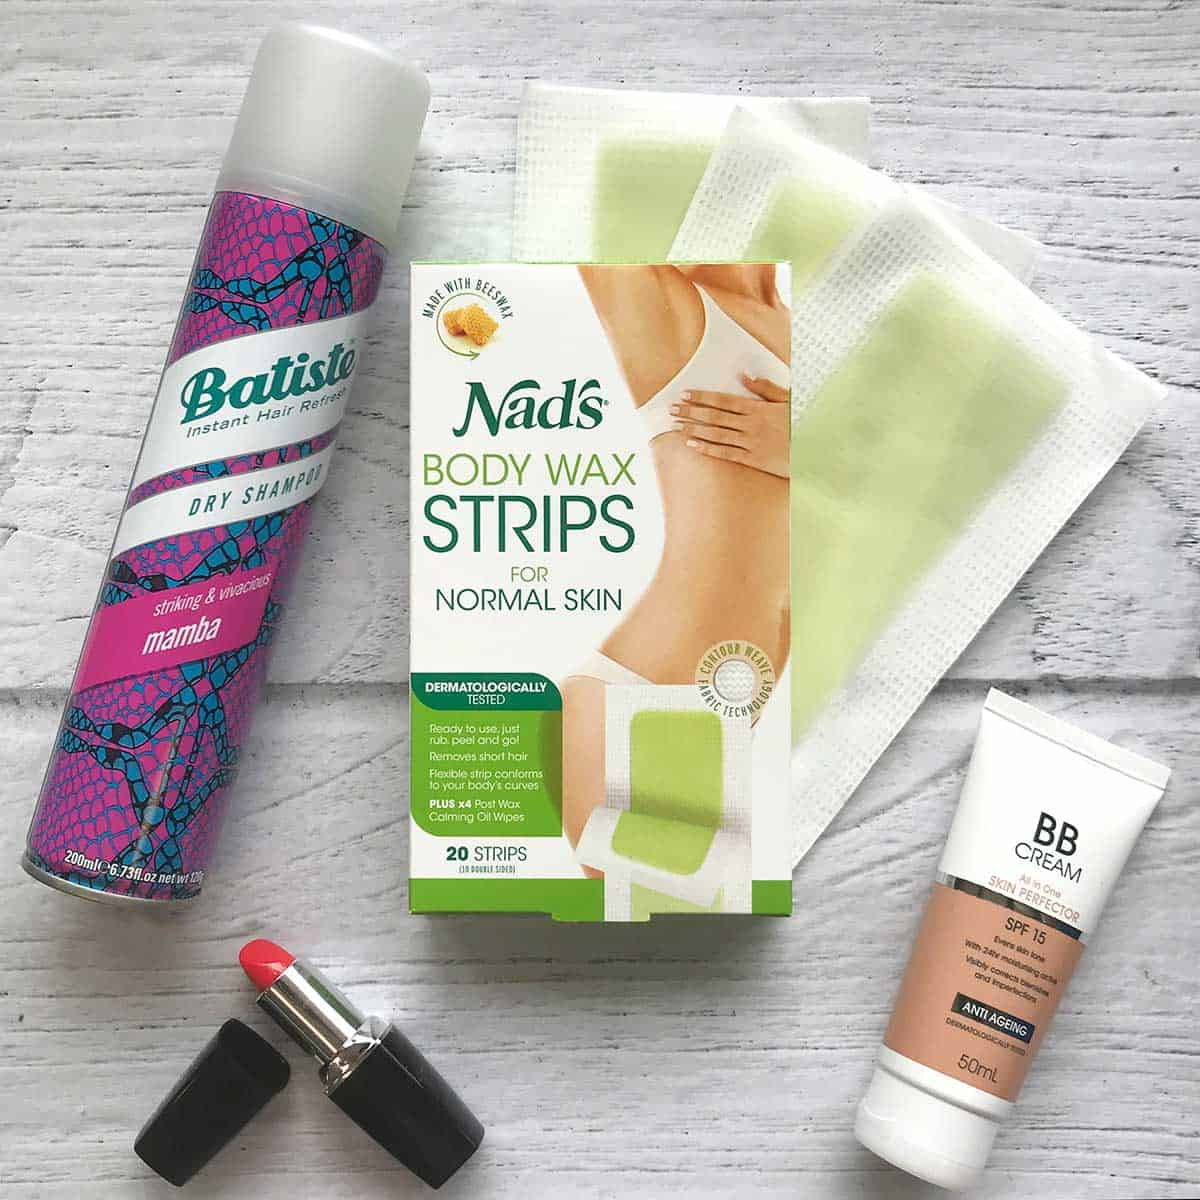 Nad's Top 5 Tips to get ready in 5 minutes | Nad's Hair Removal Blog